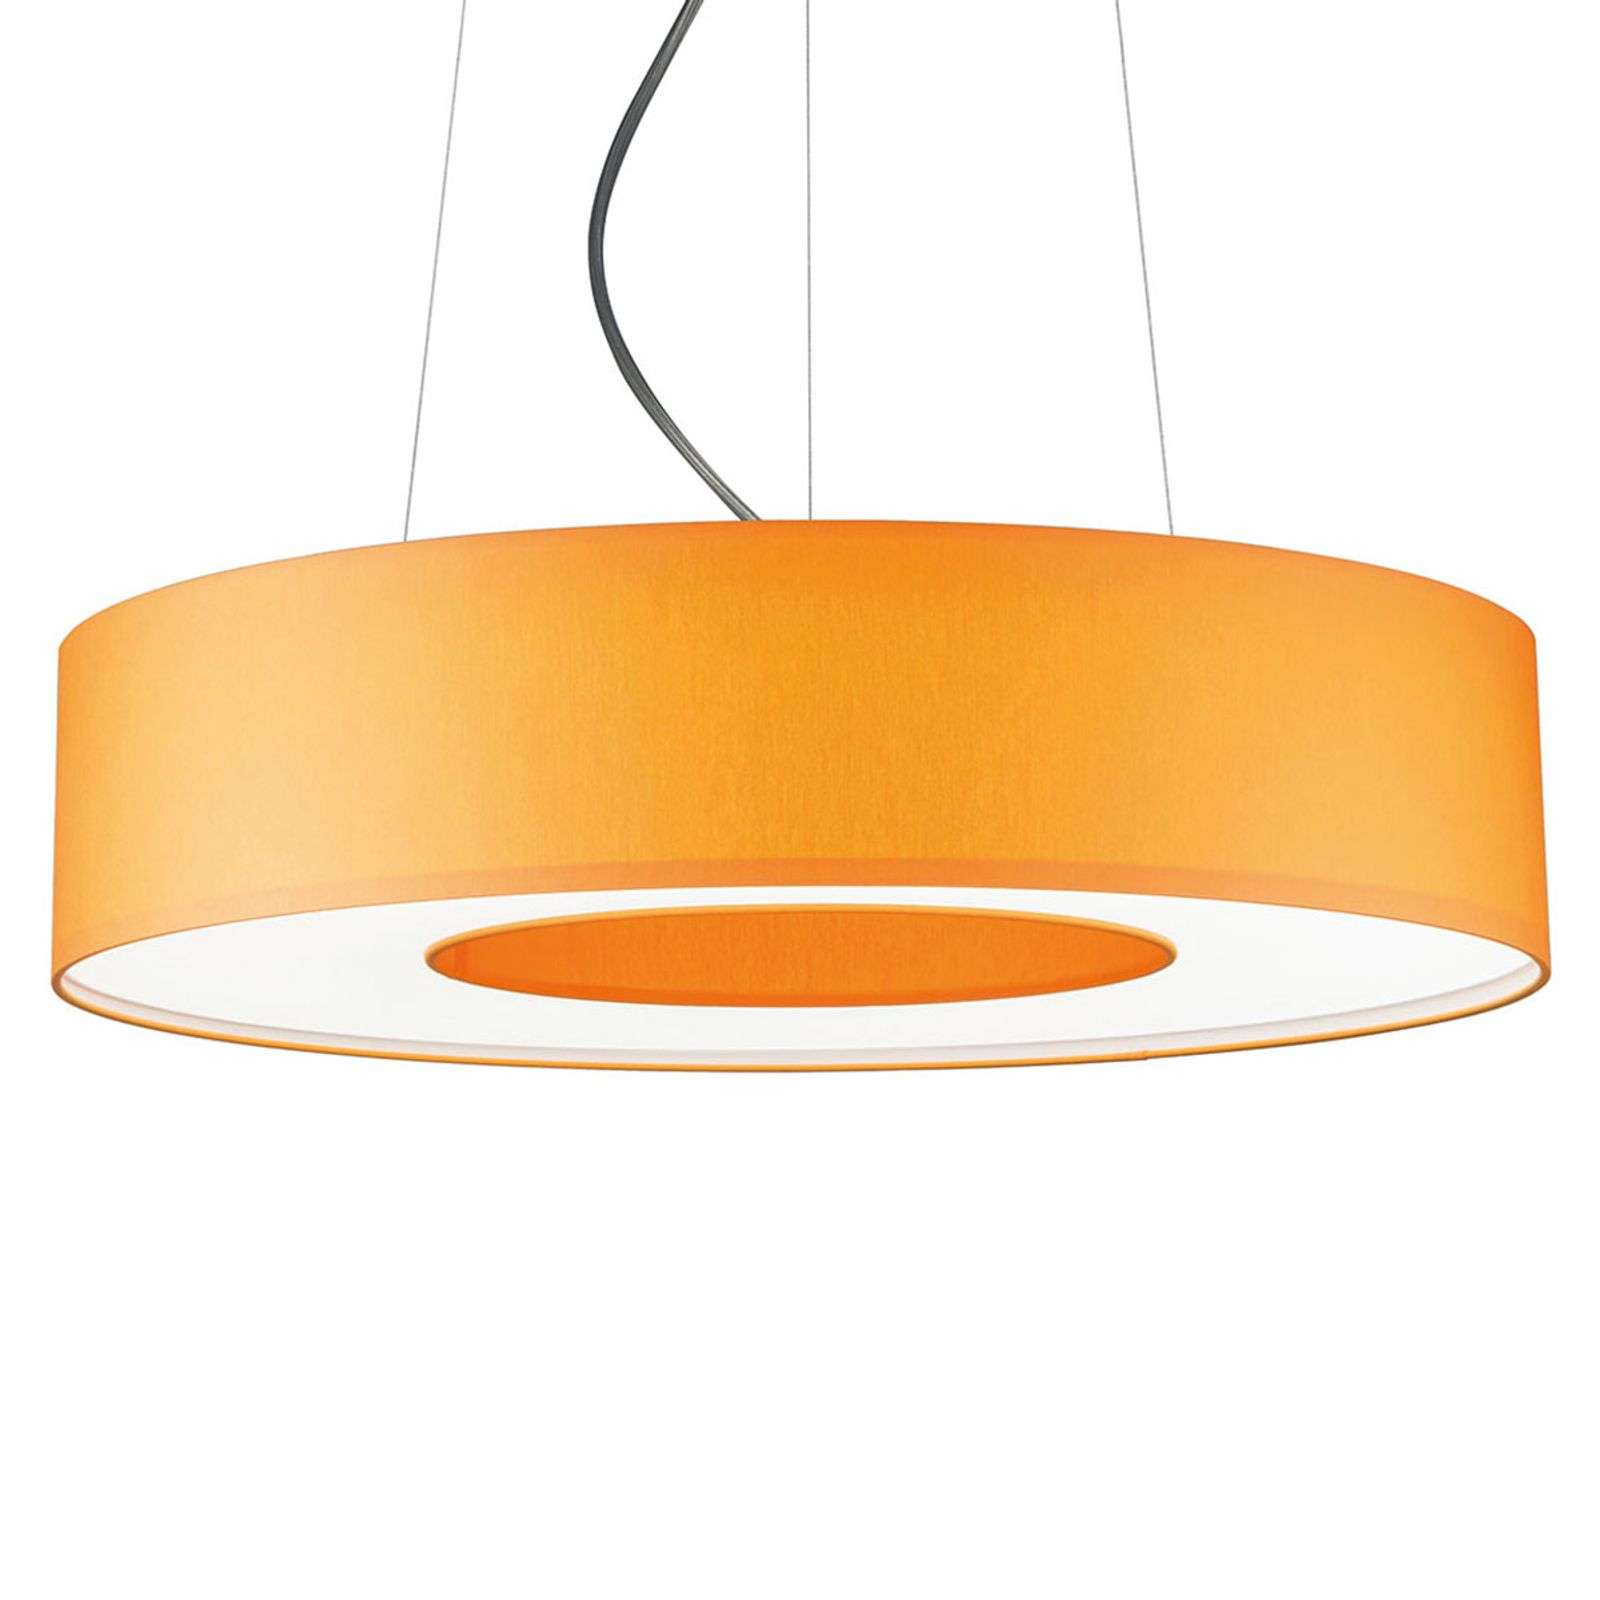 Suspension LED Donut dimmable 34 W orange